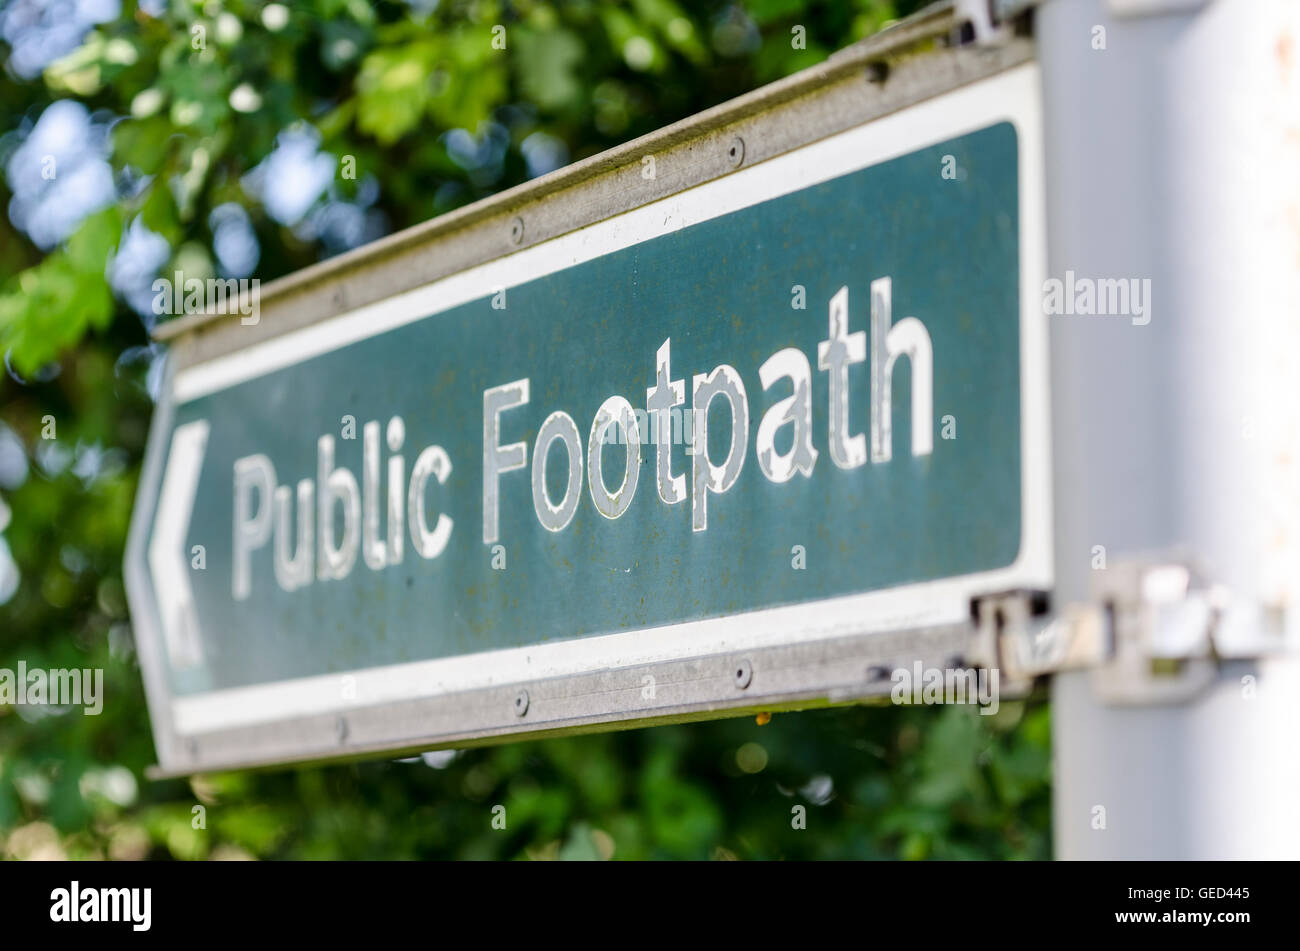 Public Footpath sign - Stock Image